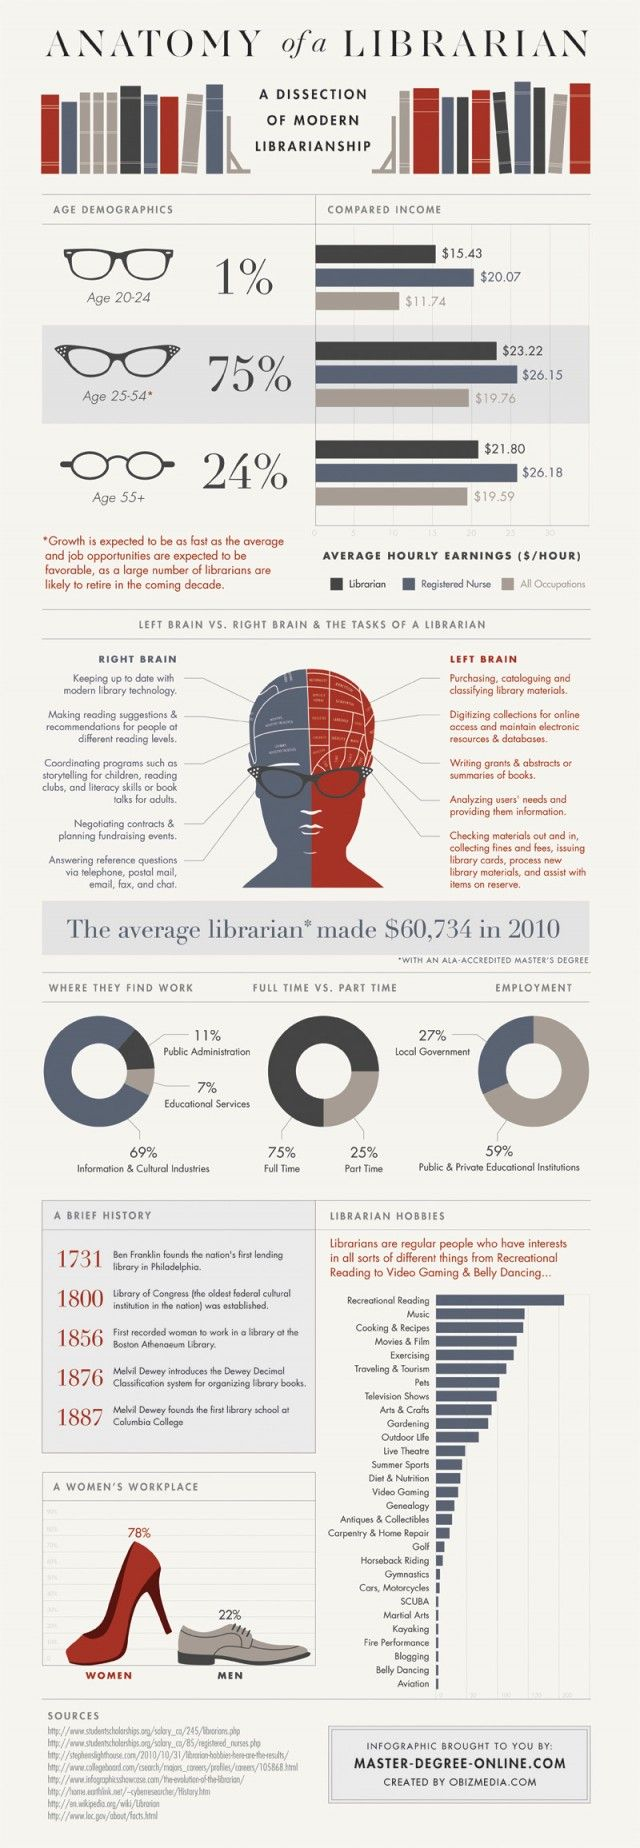 Anatomy of a Librarian. :)